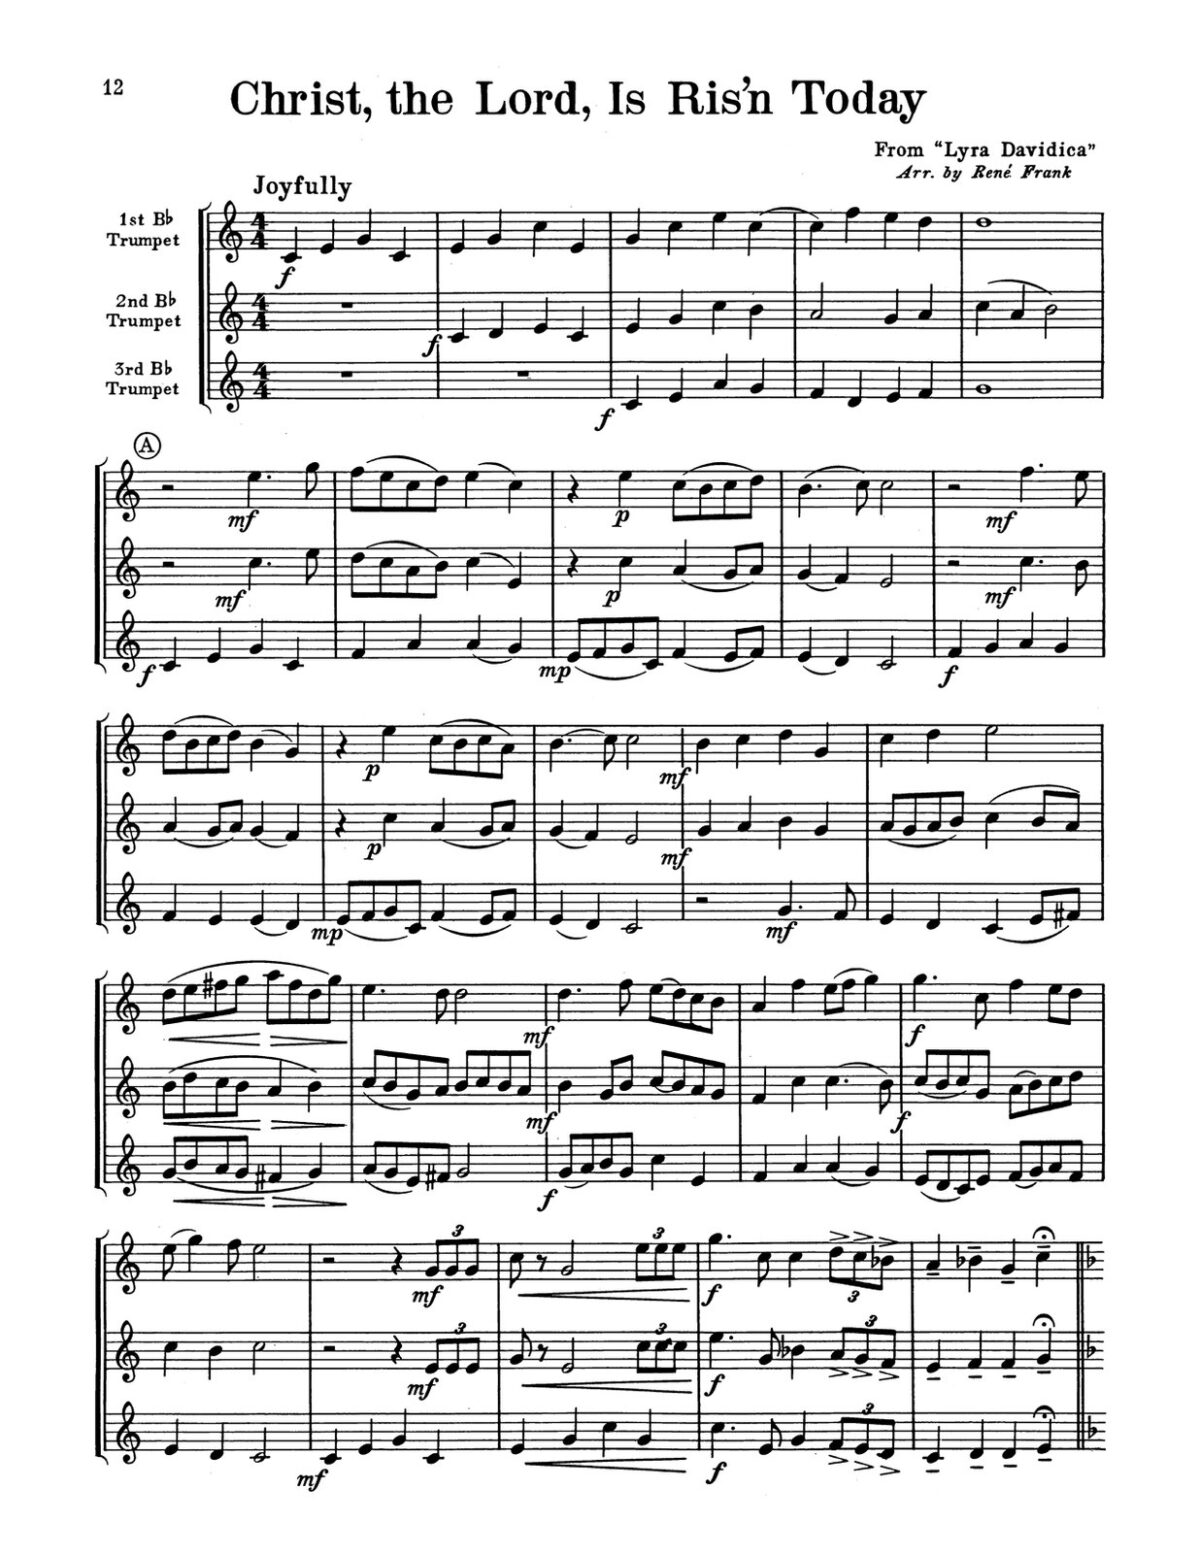 Frank, Voice of Trumpets, Hymn Fantasies for Three Instruments-p16